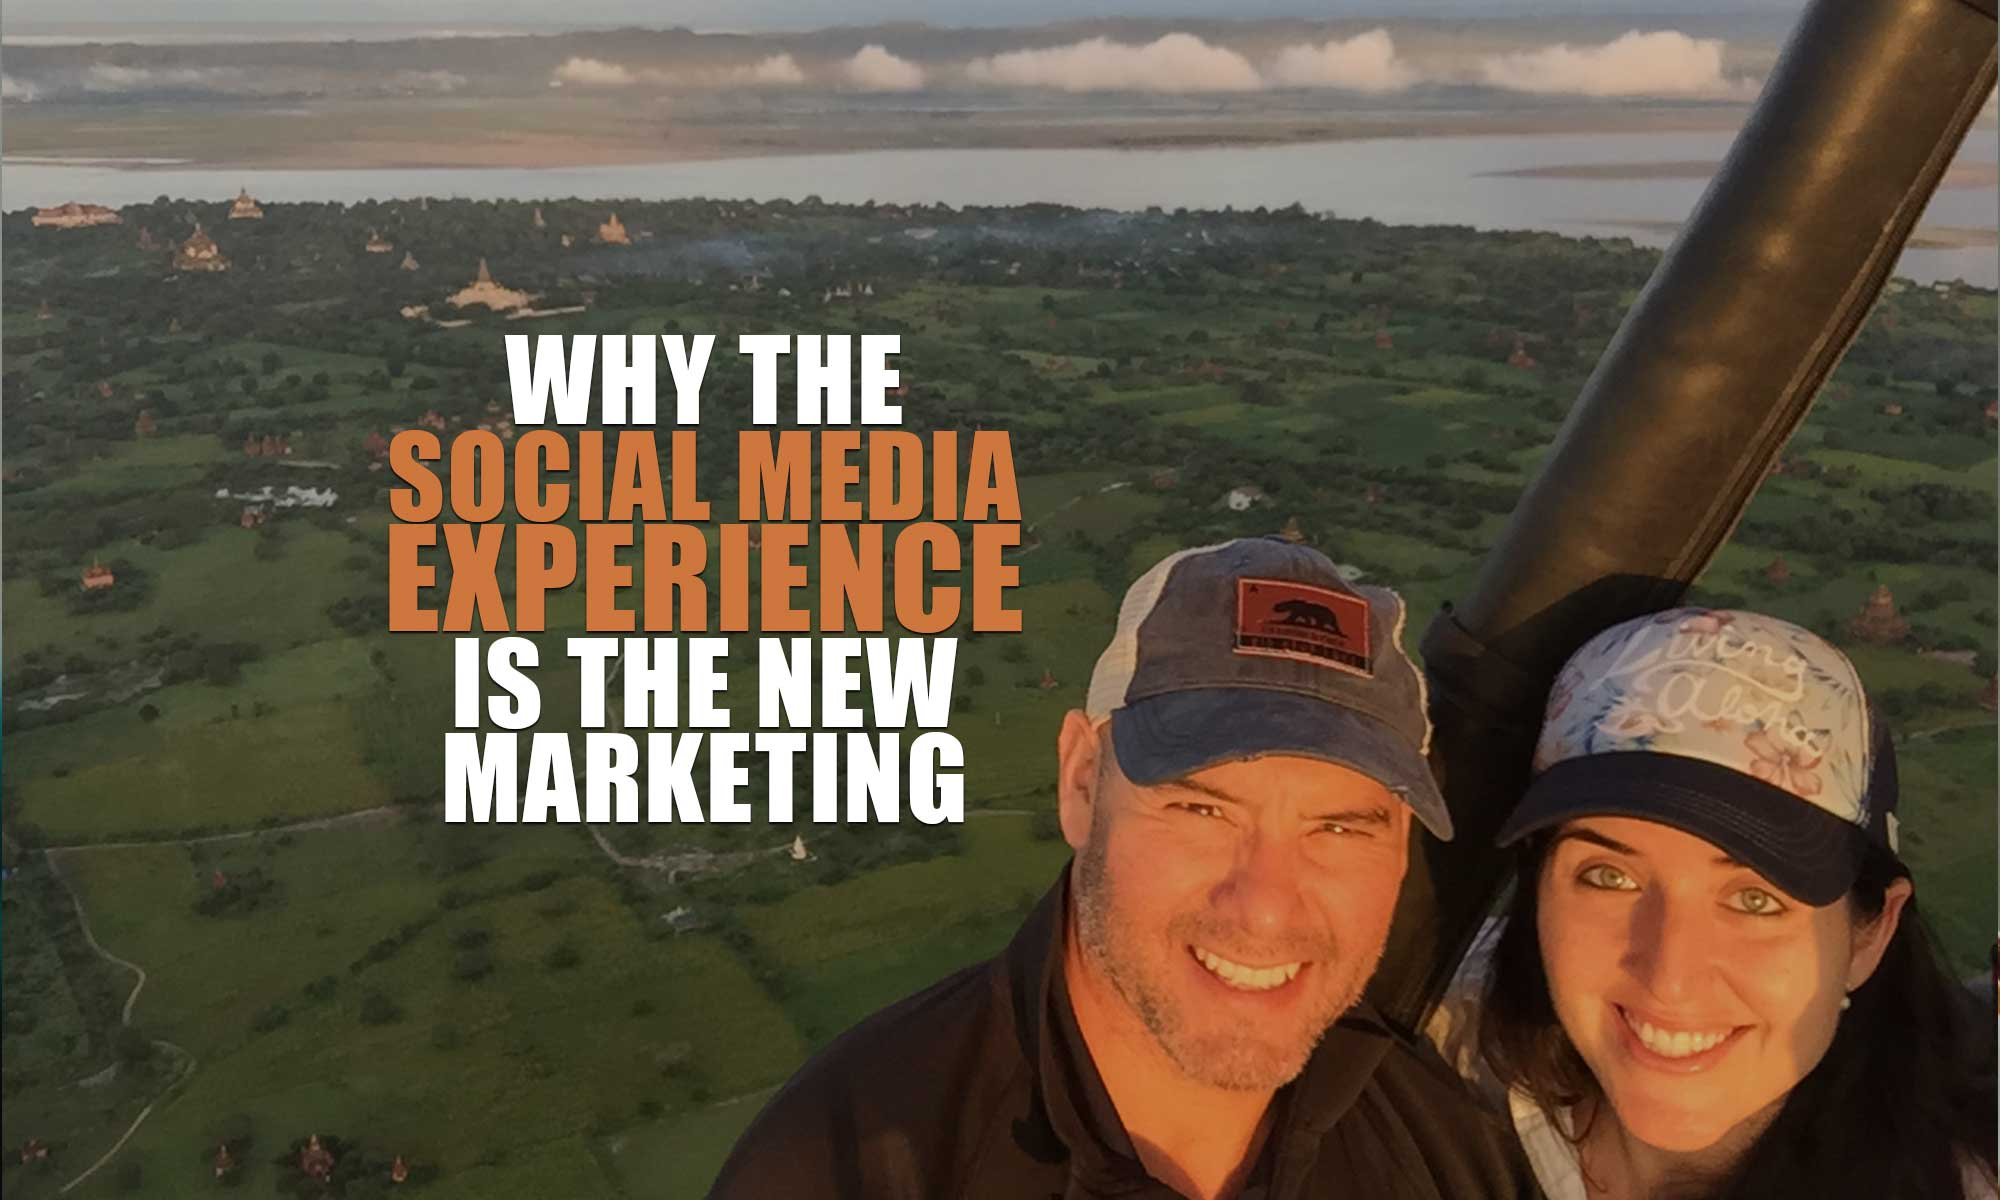 Social media experience is the new marketing